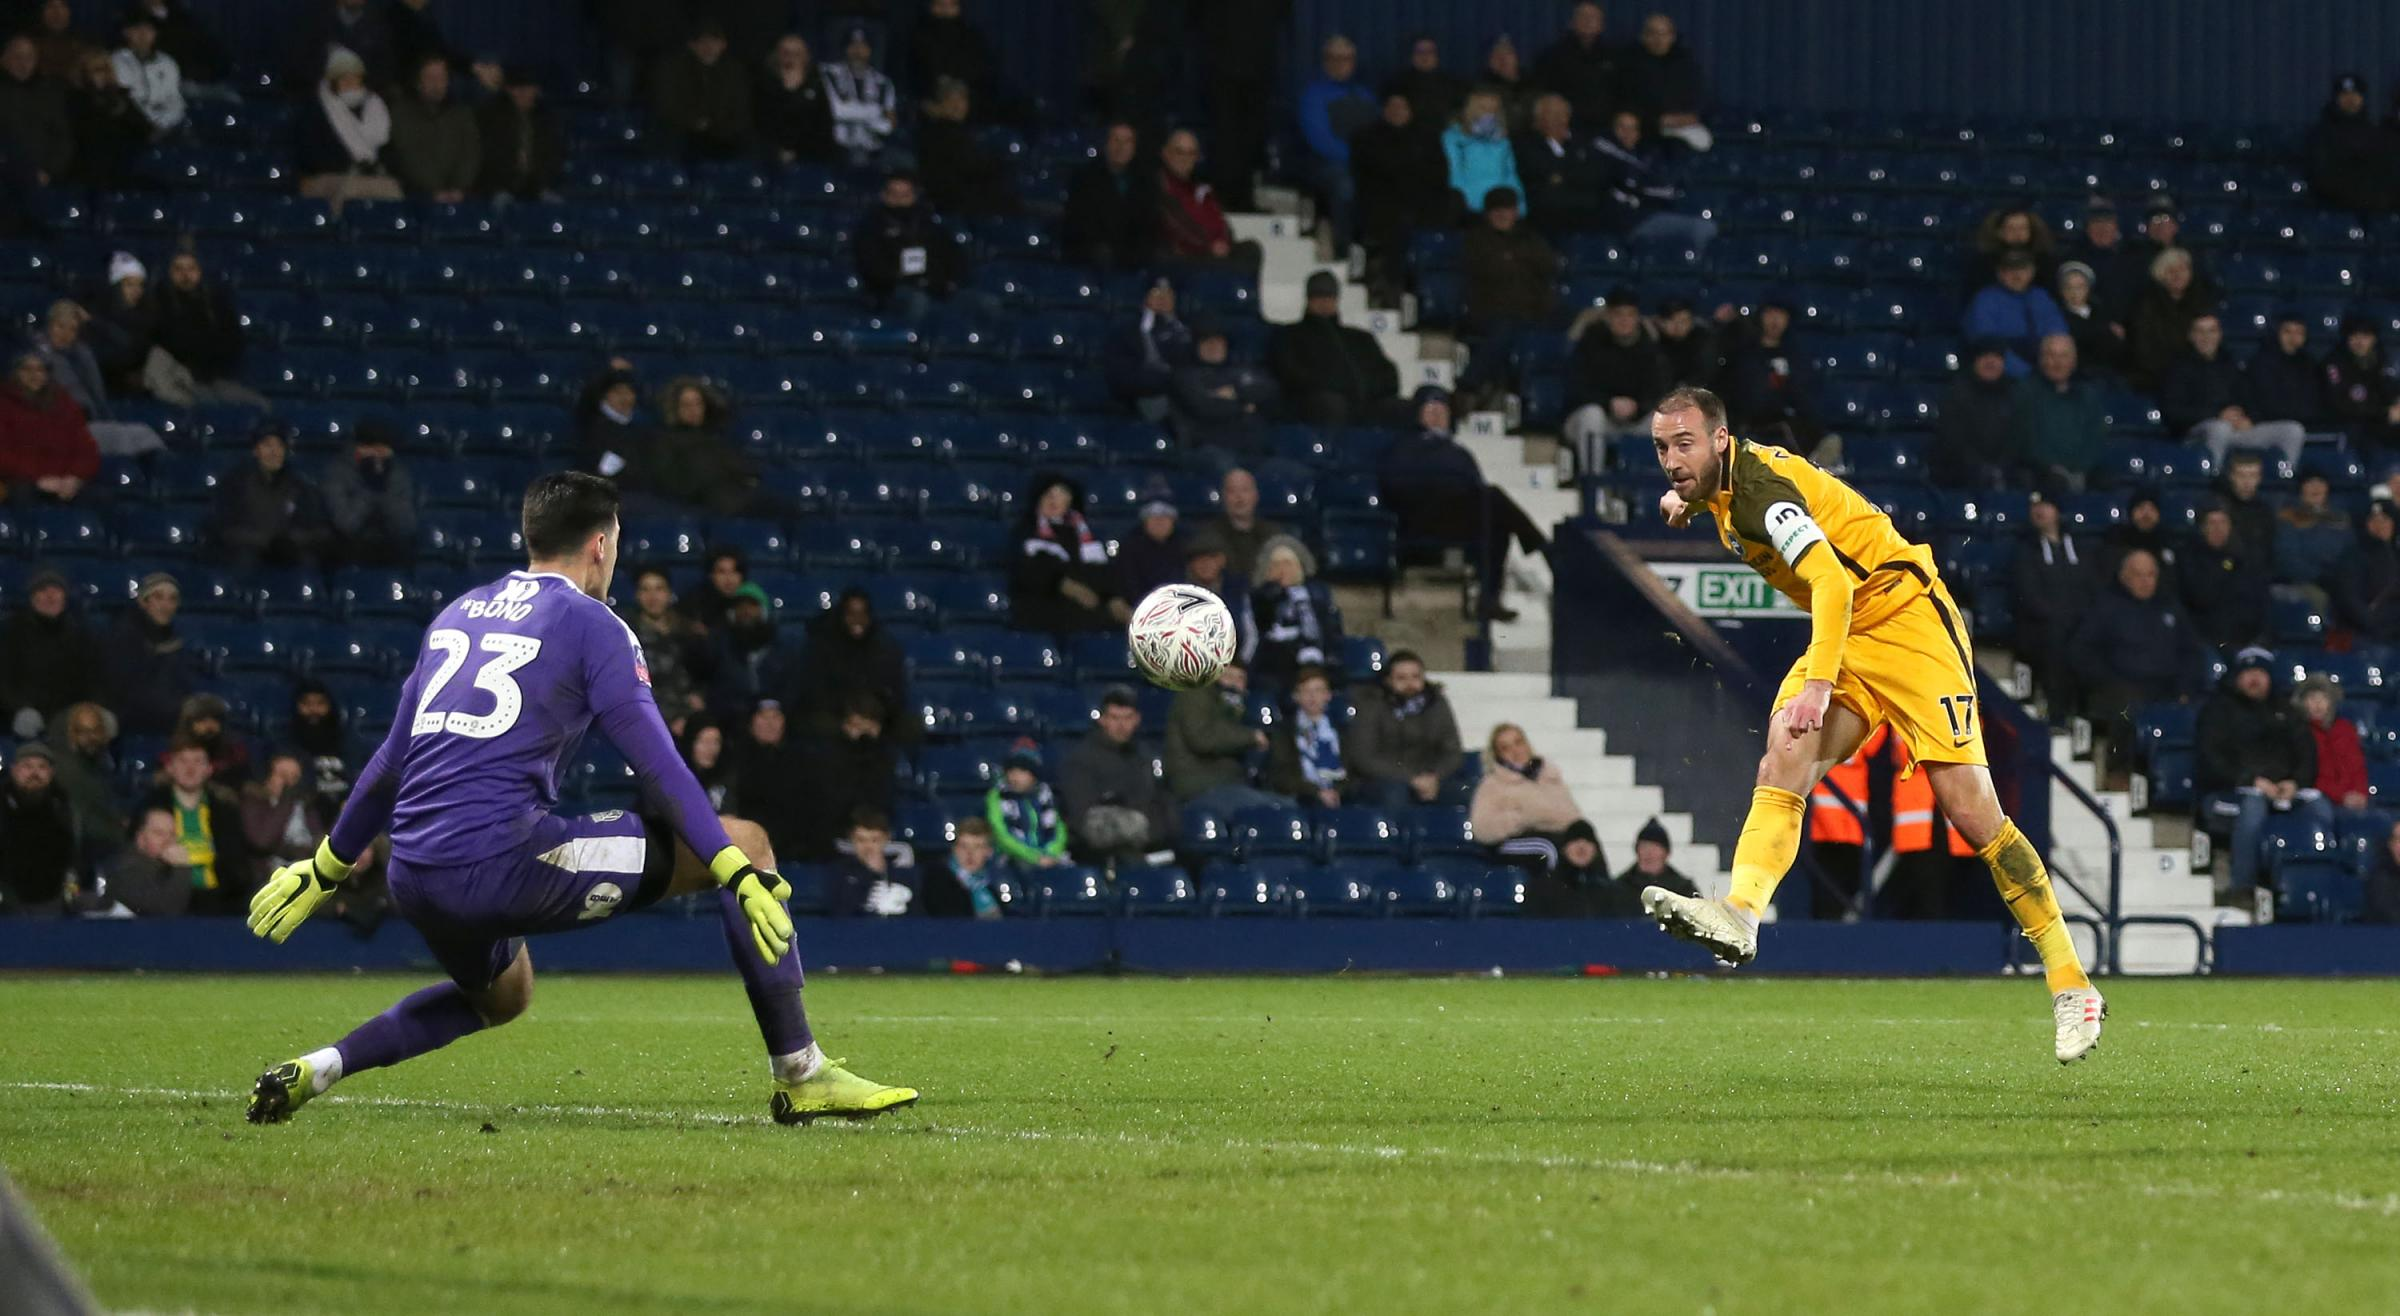 Nailed It: Albion too dependent on Murray